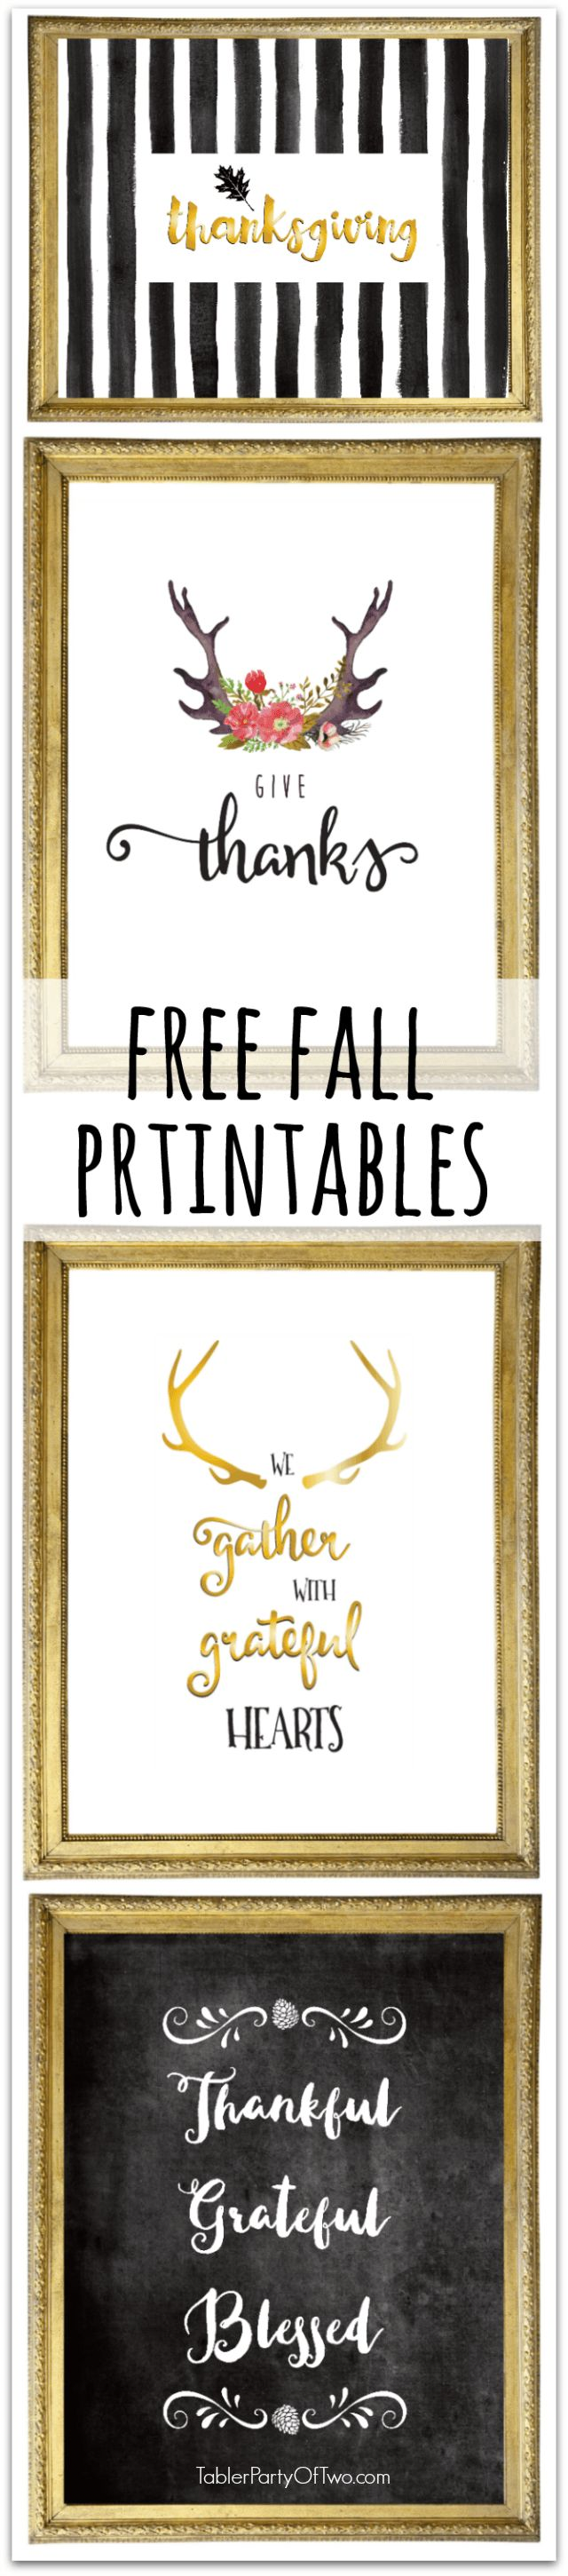 Free Thanksgiving Printables to for your fall and Thanksgiving decorating! TablerPartyofTwo.com